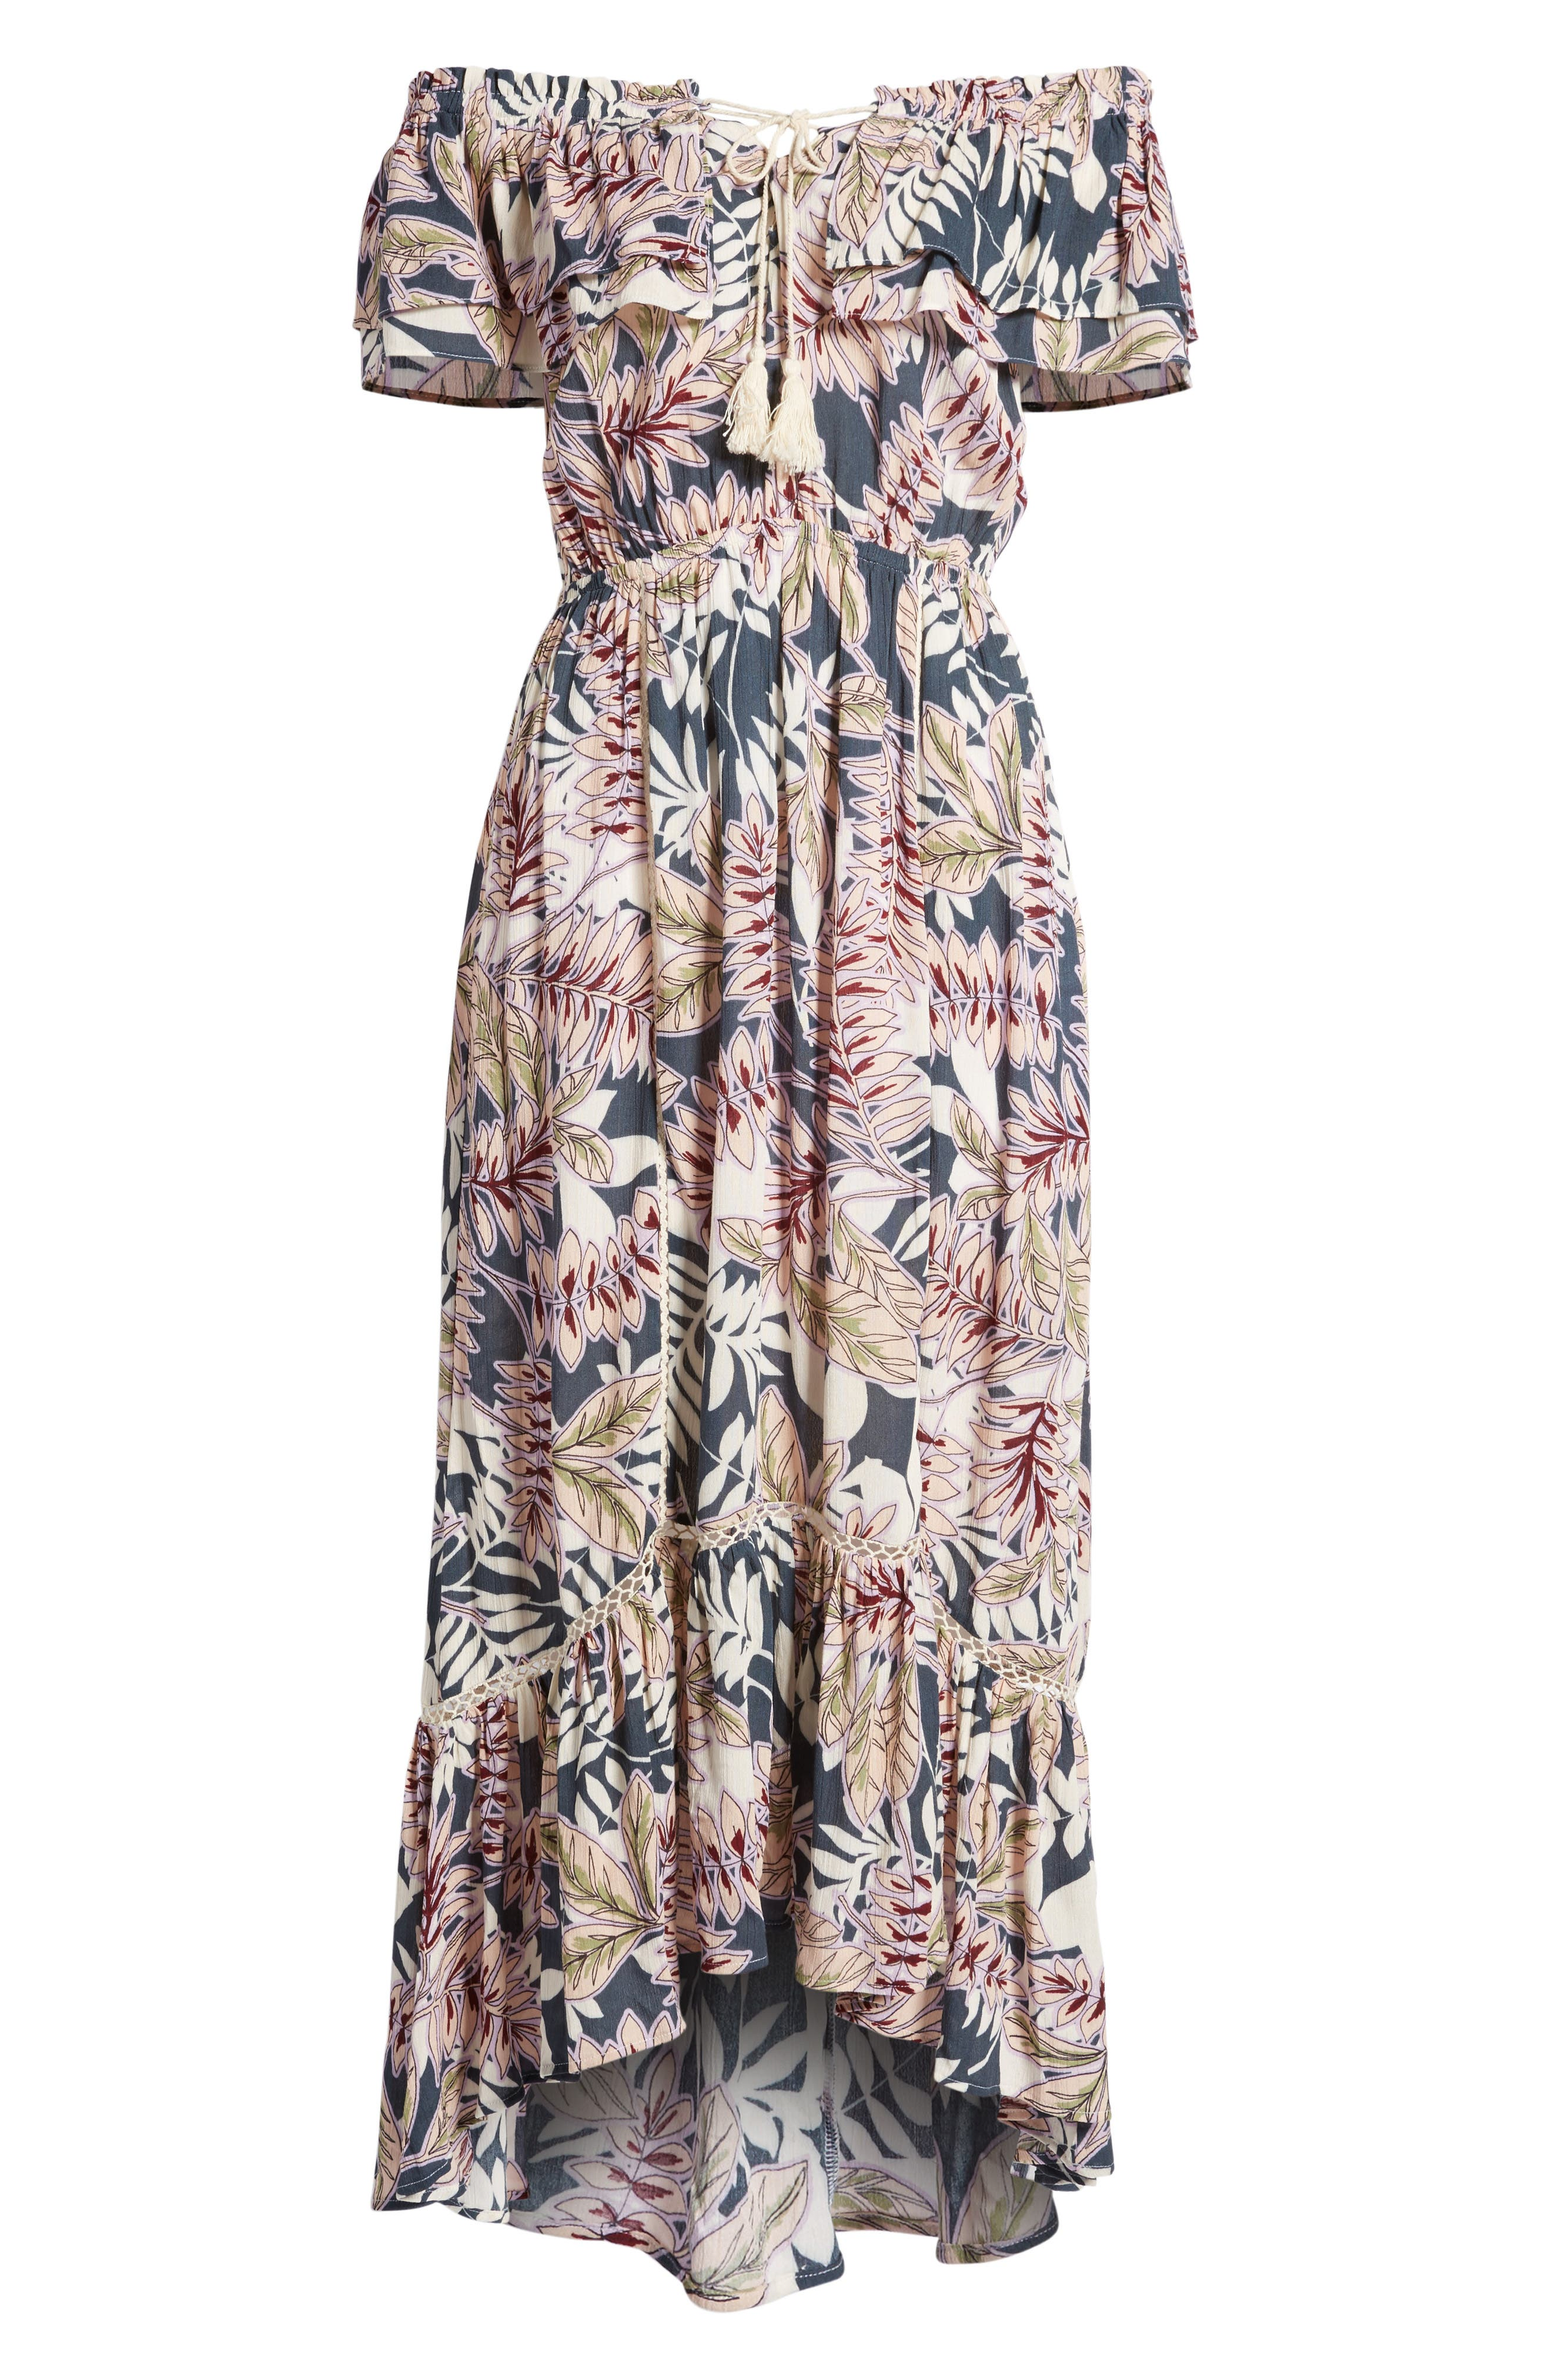 Maui Off the Shoulder High/Low Maxi Dress,                             Alternate thumbnail 6, color,                             340